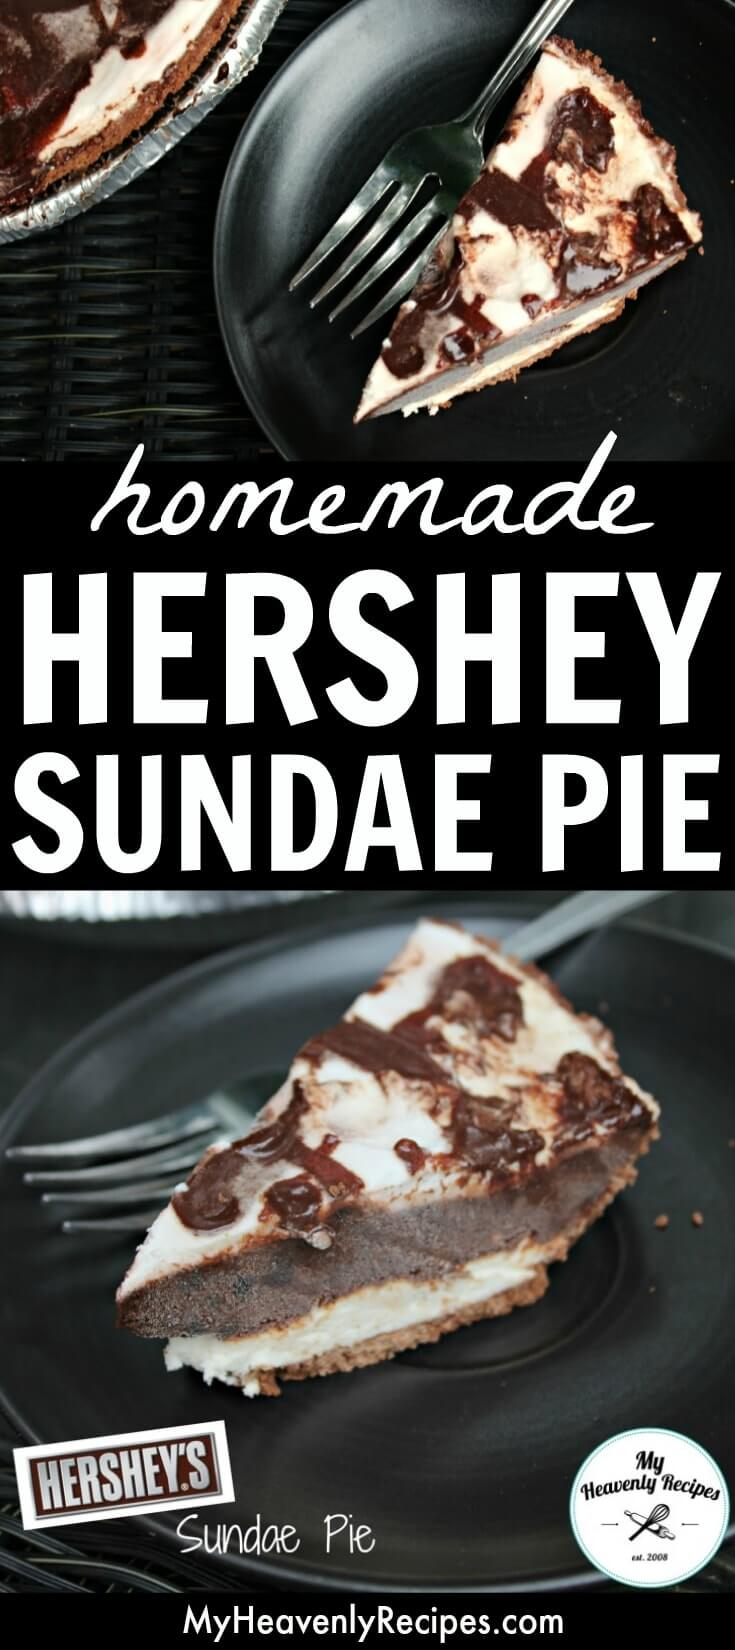 Homemade Hershey Pie + Recipe Video - Want an amazing dessert recipe? This homemade copycat Hershey Sundae Pie is the perfect recipe to make! It's an easy and delicious dessert your whole family will love. #MyHeavenlyRecipes #Chocolate #NoBakeDesserts #CopyCatRecipes #PieRecipes